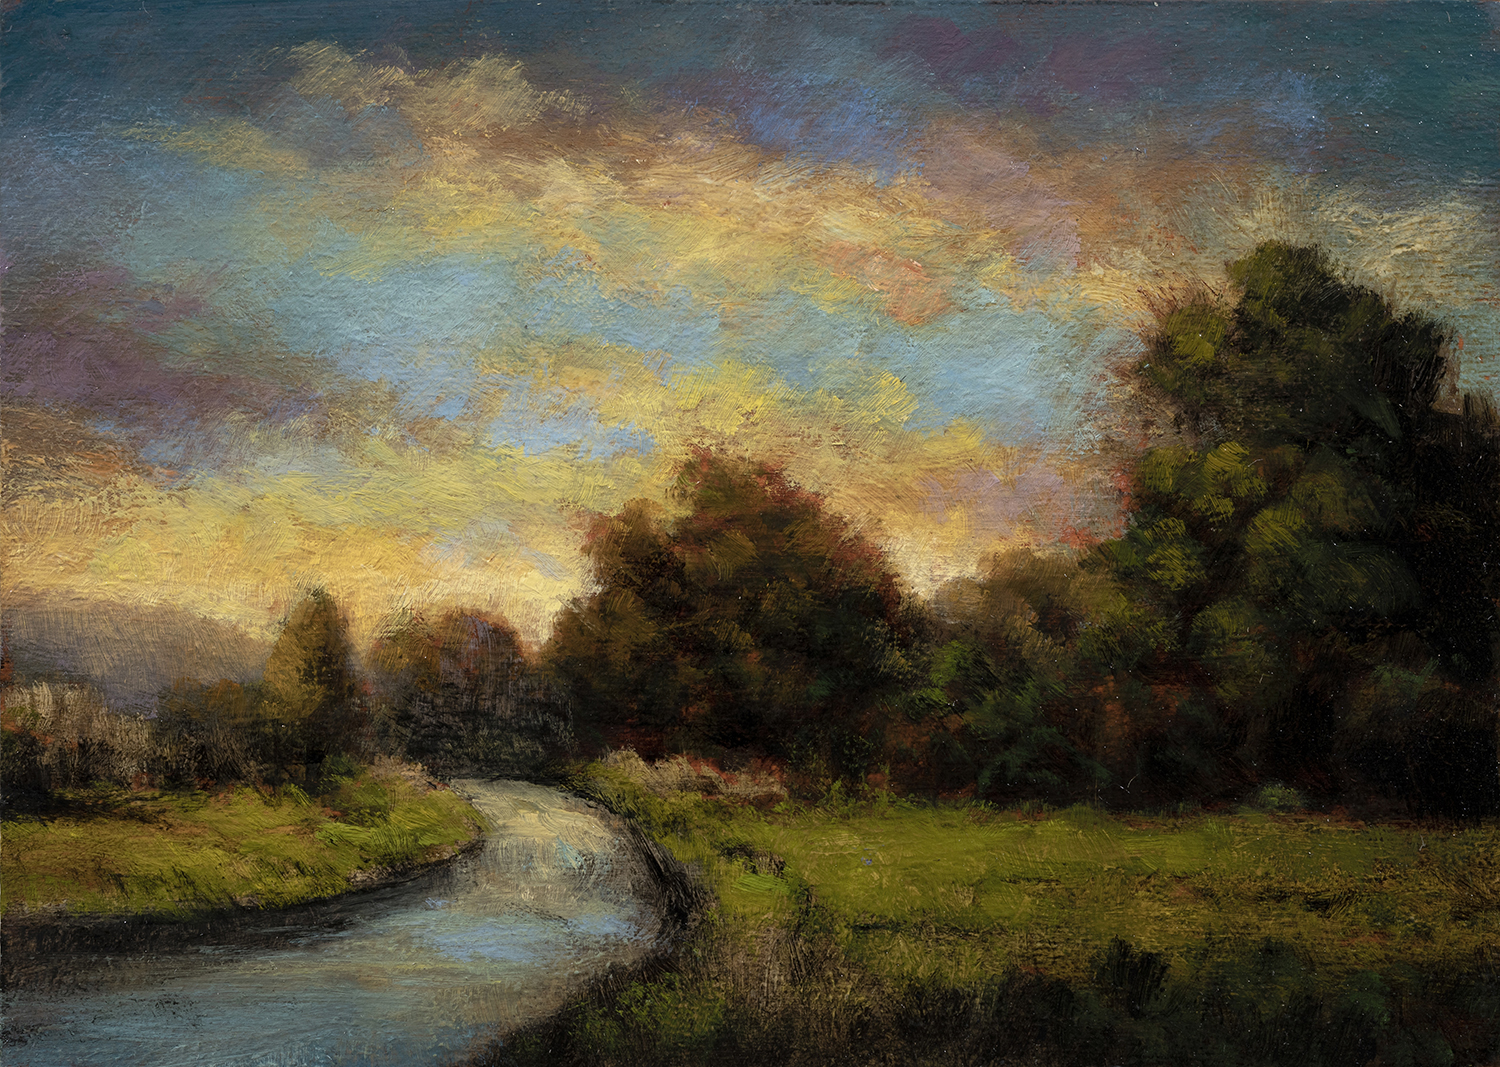 Northland Road by M Francis McCarthy - 5x7 Oil on Wood Panel